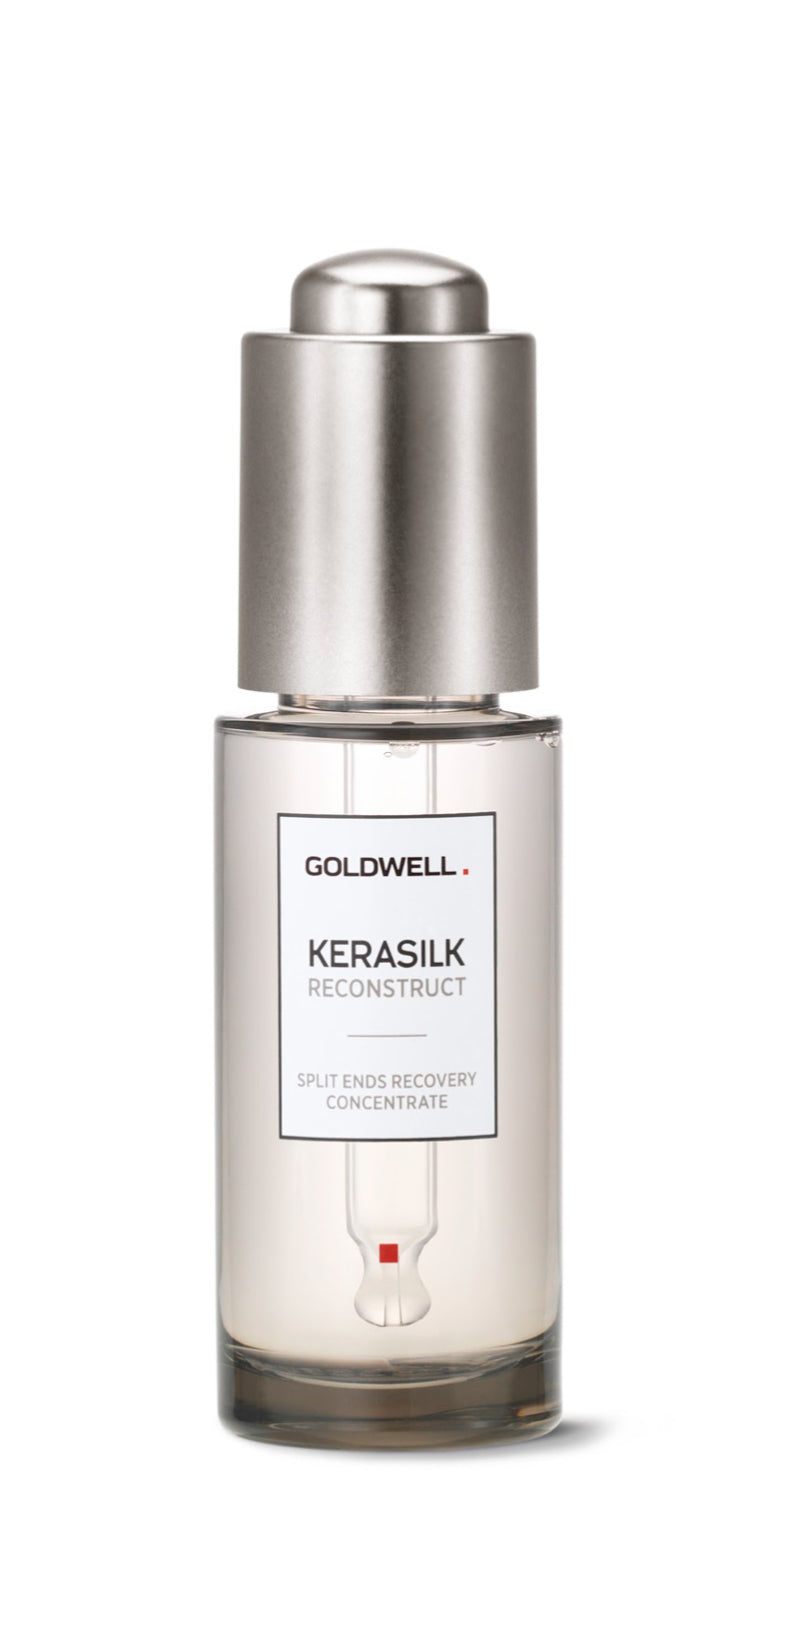 Kerasilk Reconstruct Split Ends Recovery  Concentrate. (28 ml)